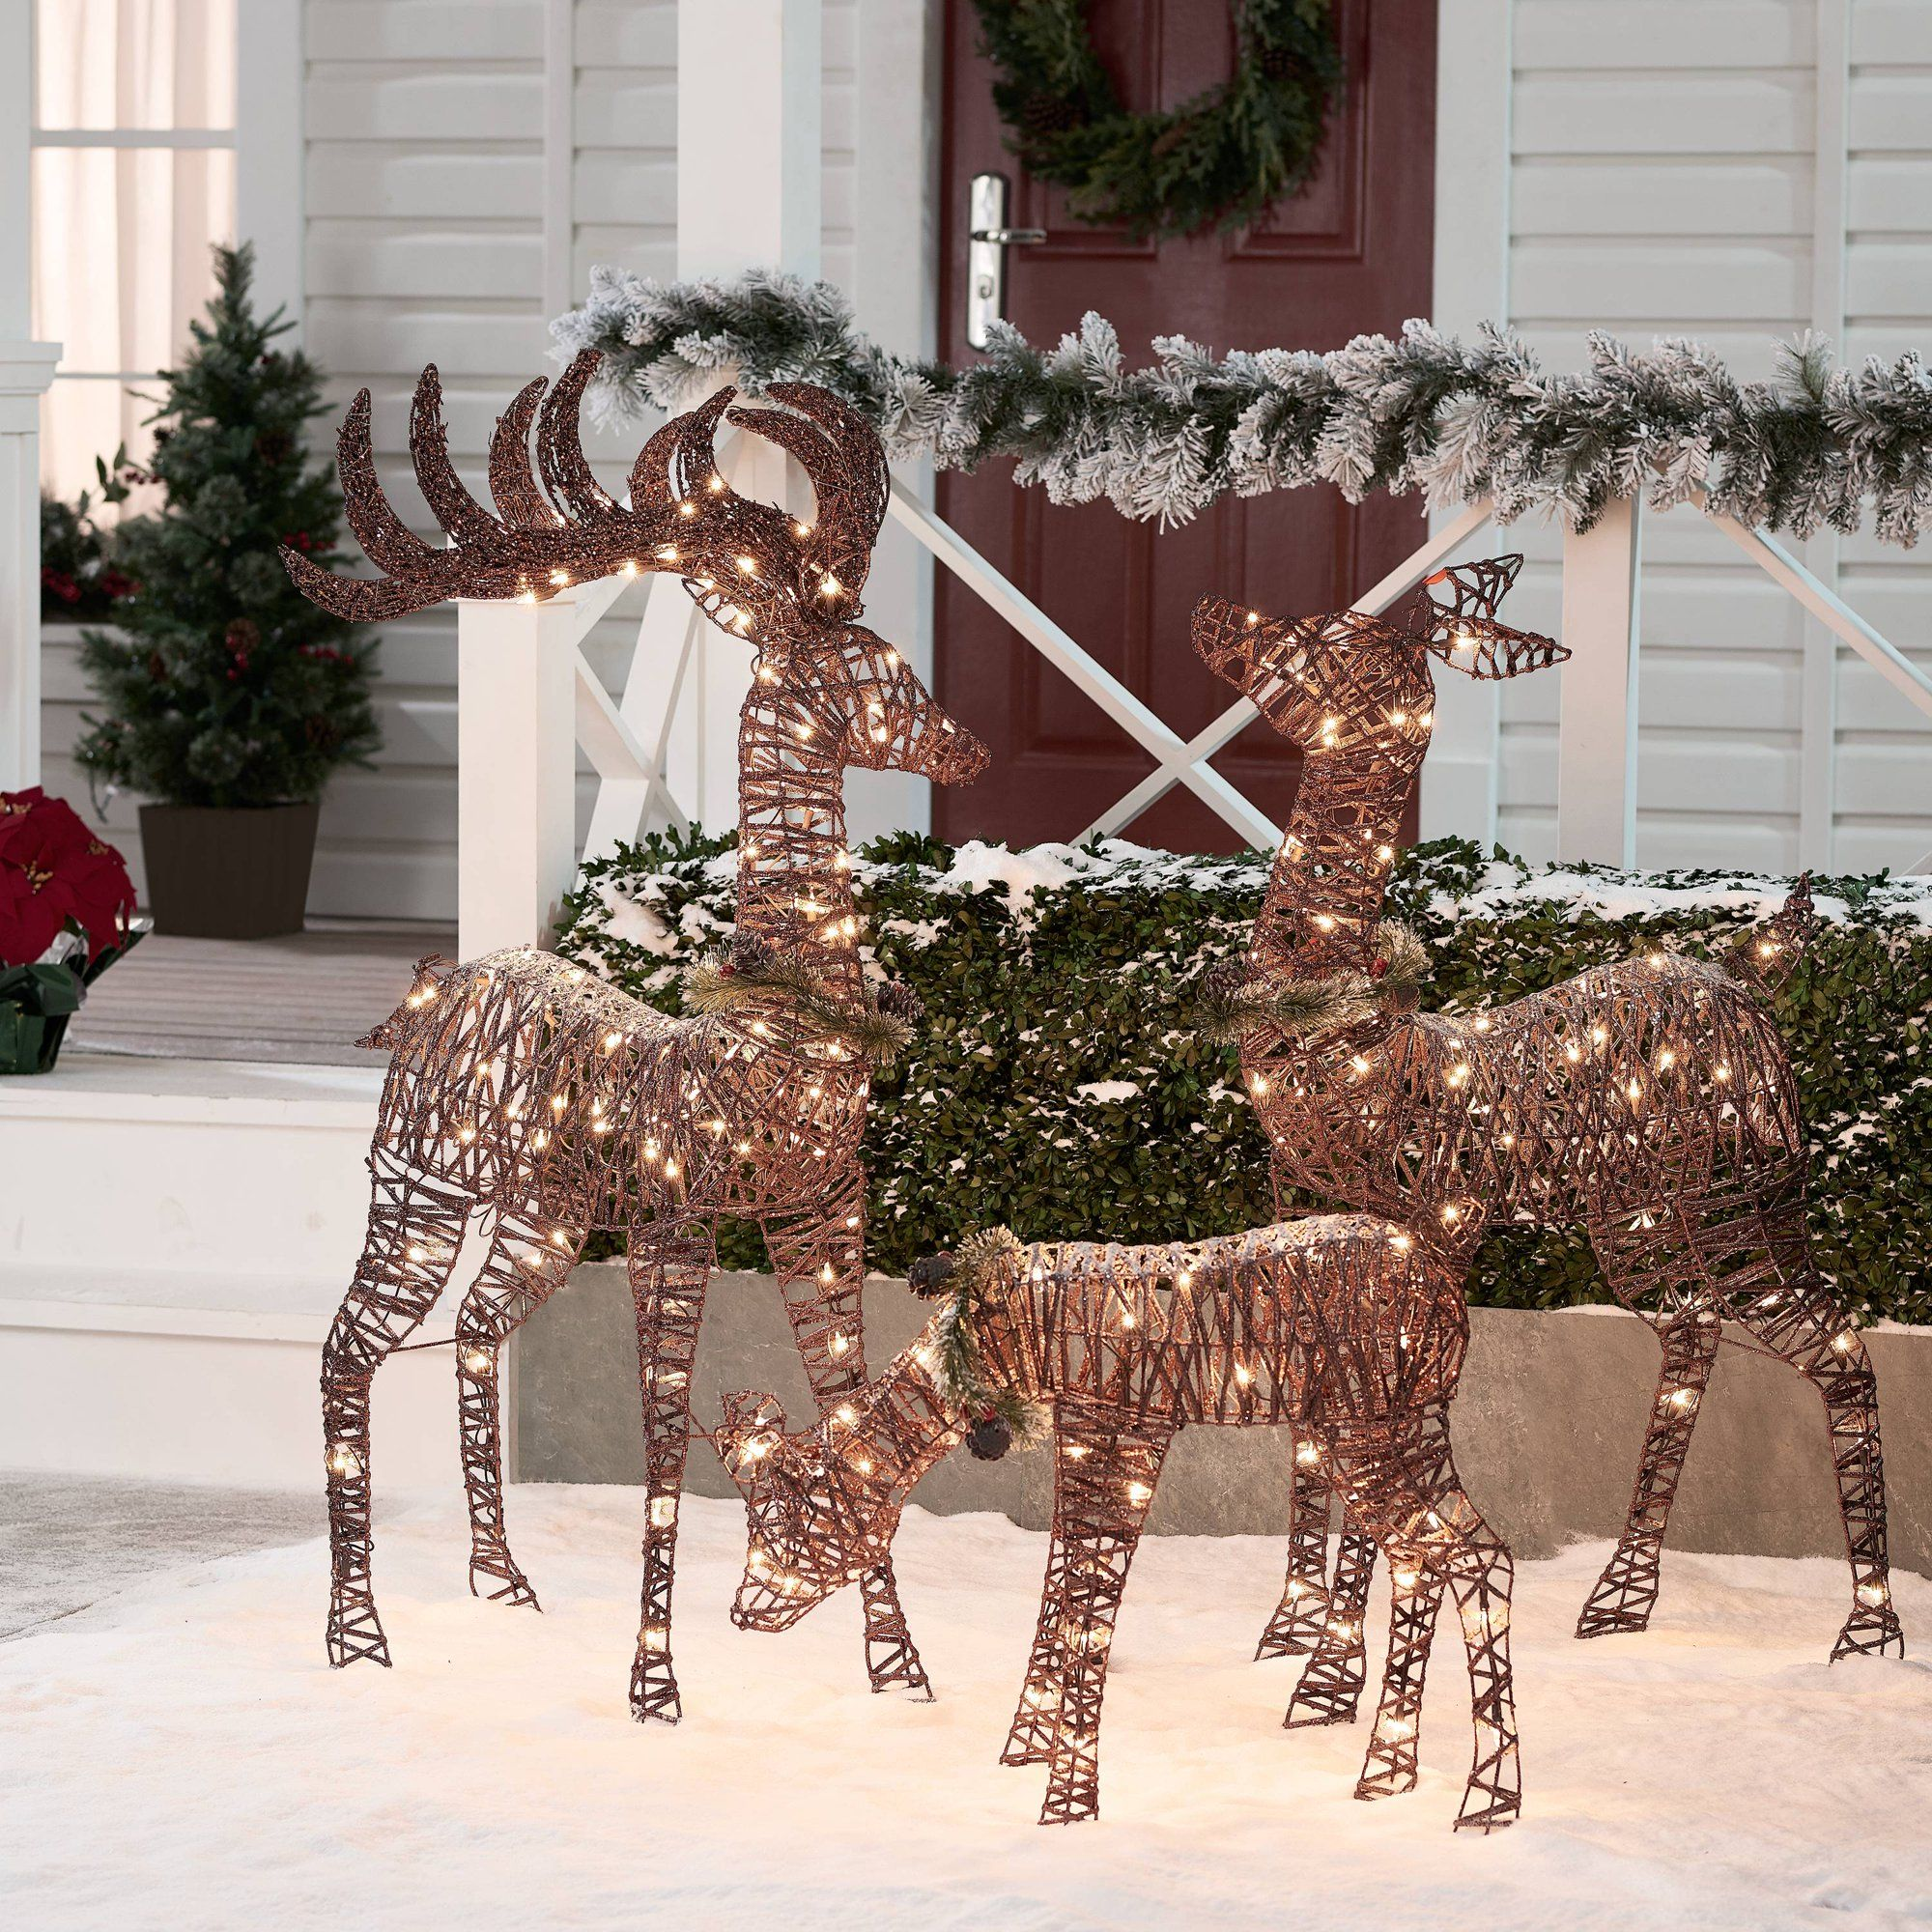 Holiday Time Light Up Outdoor 3 Piece Reindeer Family Decoration With Clear Lights Walmart Com Outdoor Christmas Reindeer Outdoor Christmas Lights Christmas House Lights